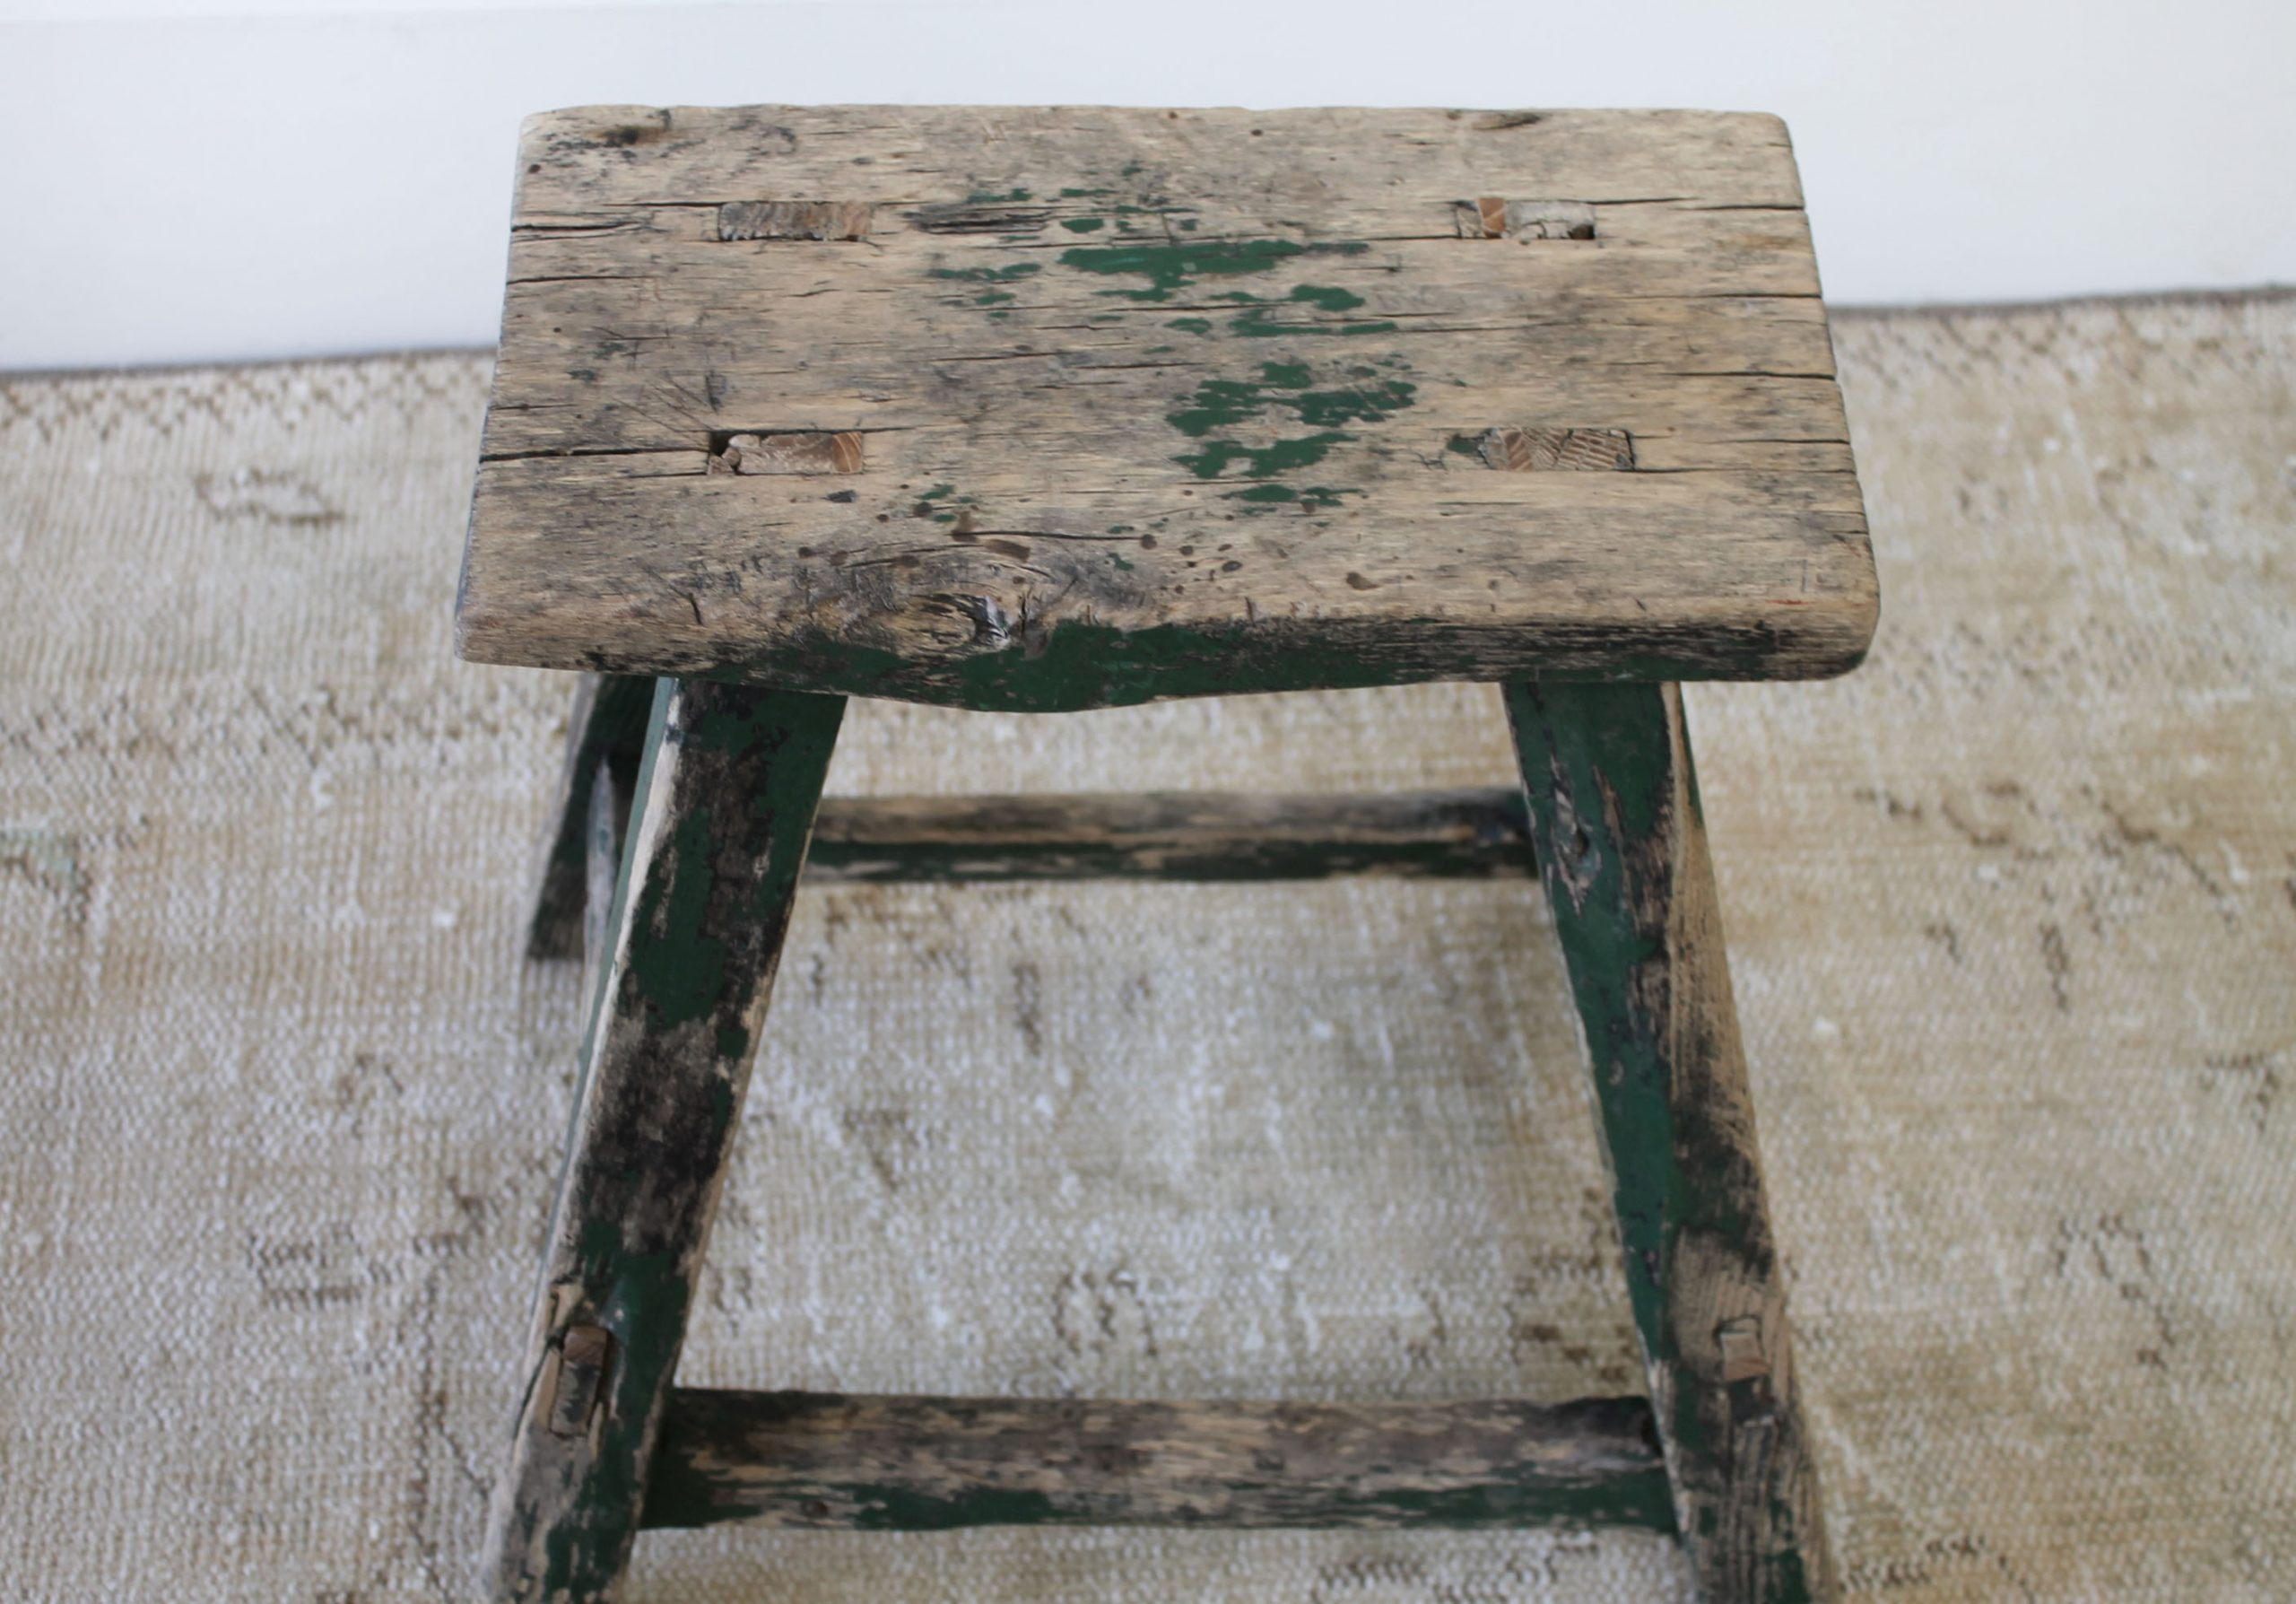 Antique Elm Wood Stool with Faded Green Paint